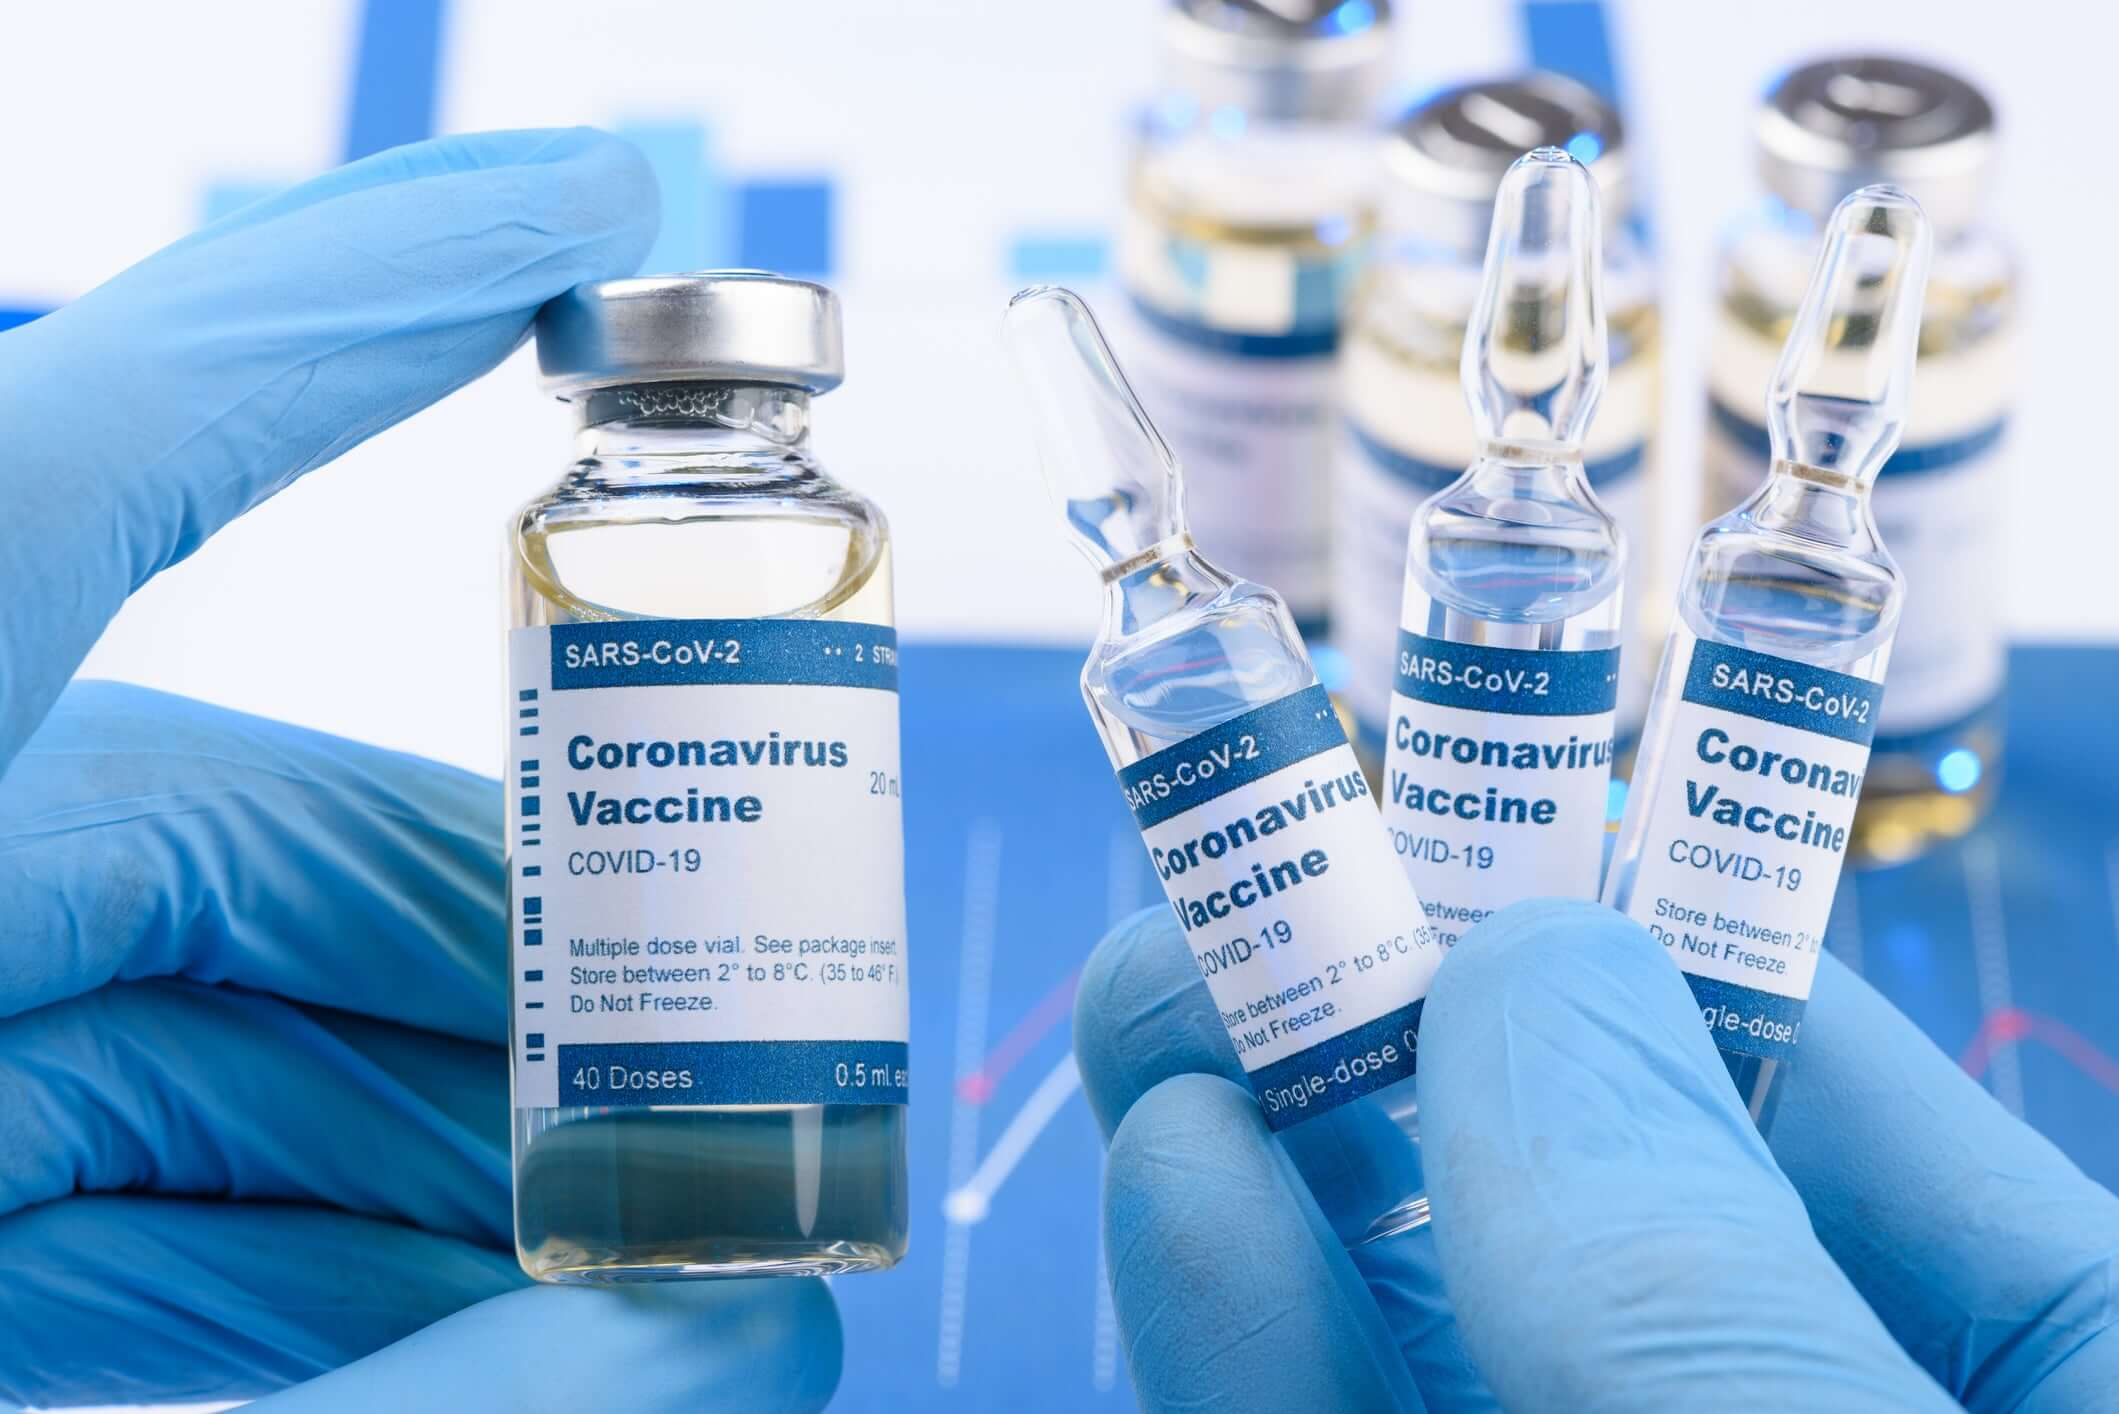 Update on the COVID-19 Vaccine